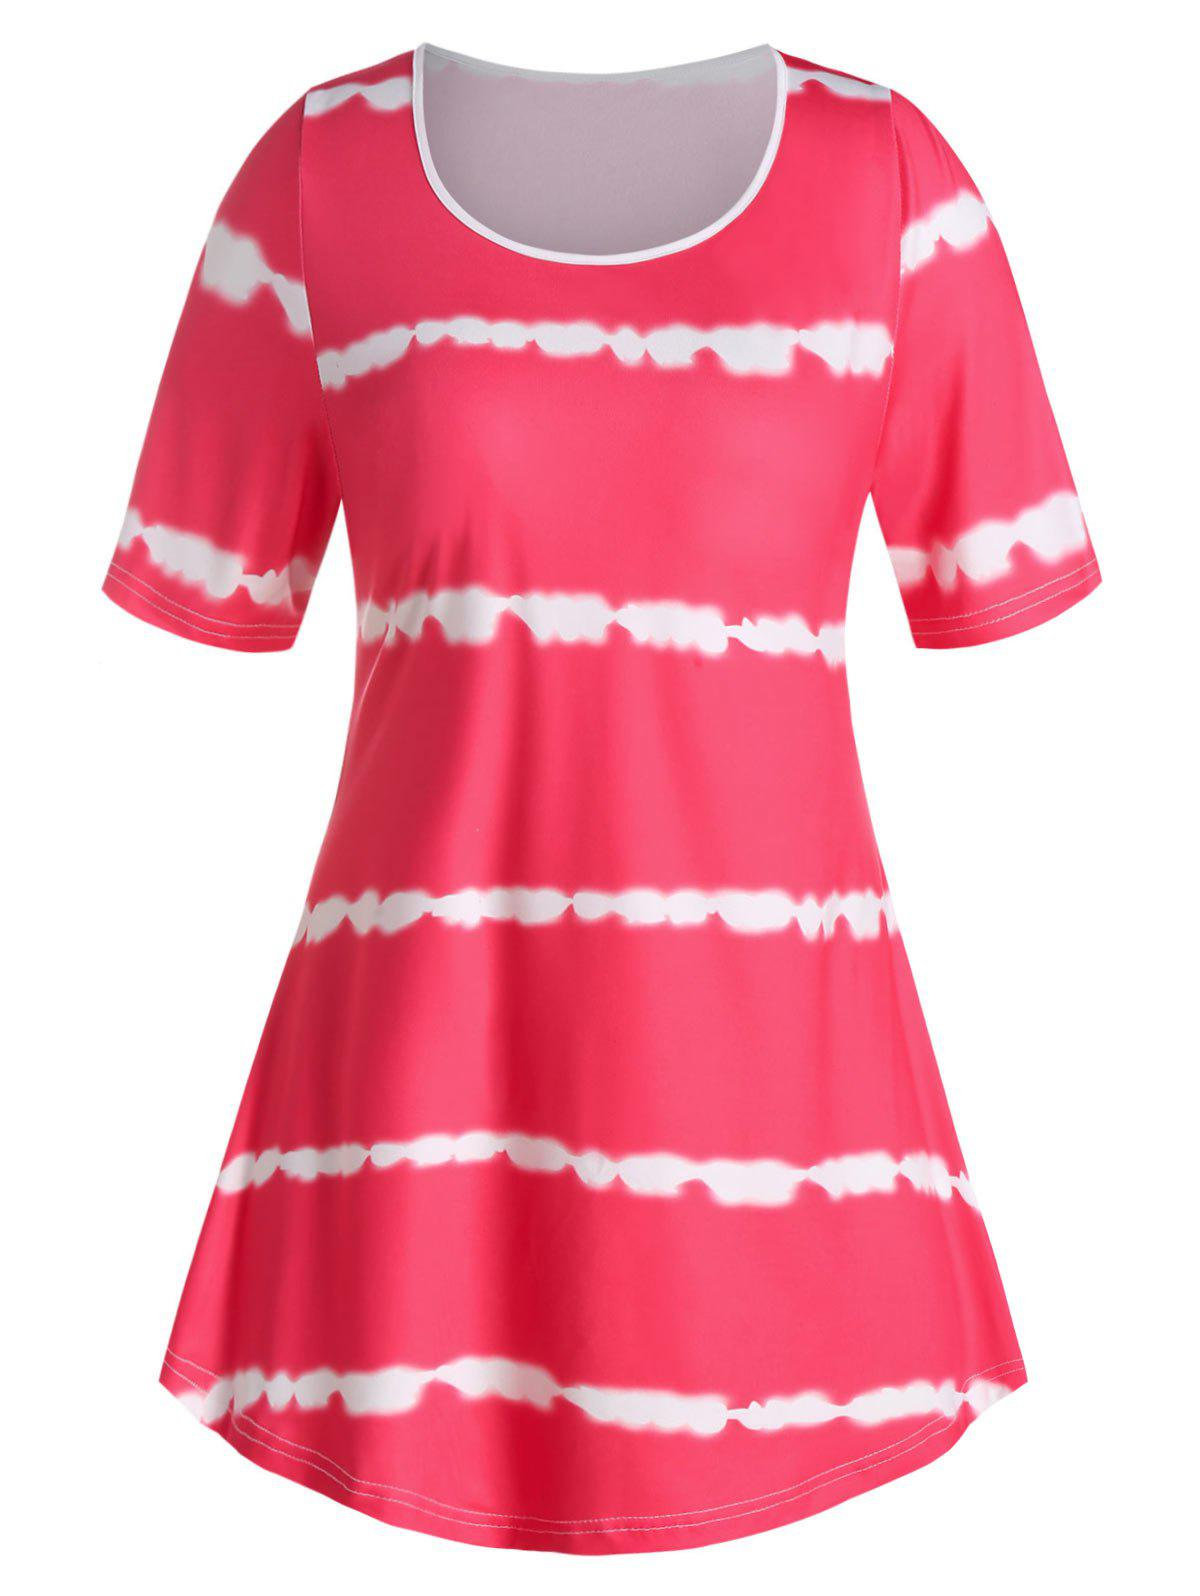 Plus Size Tie Dye Curved T Shirt - ROSE RED 2X